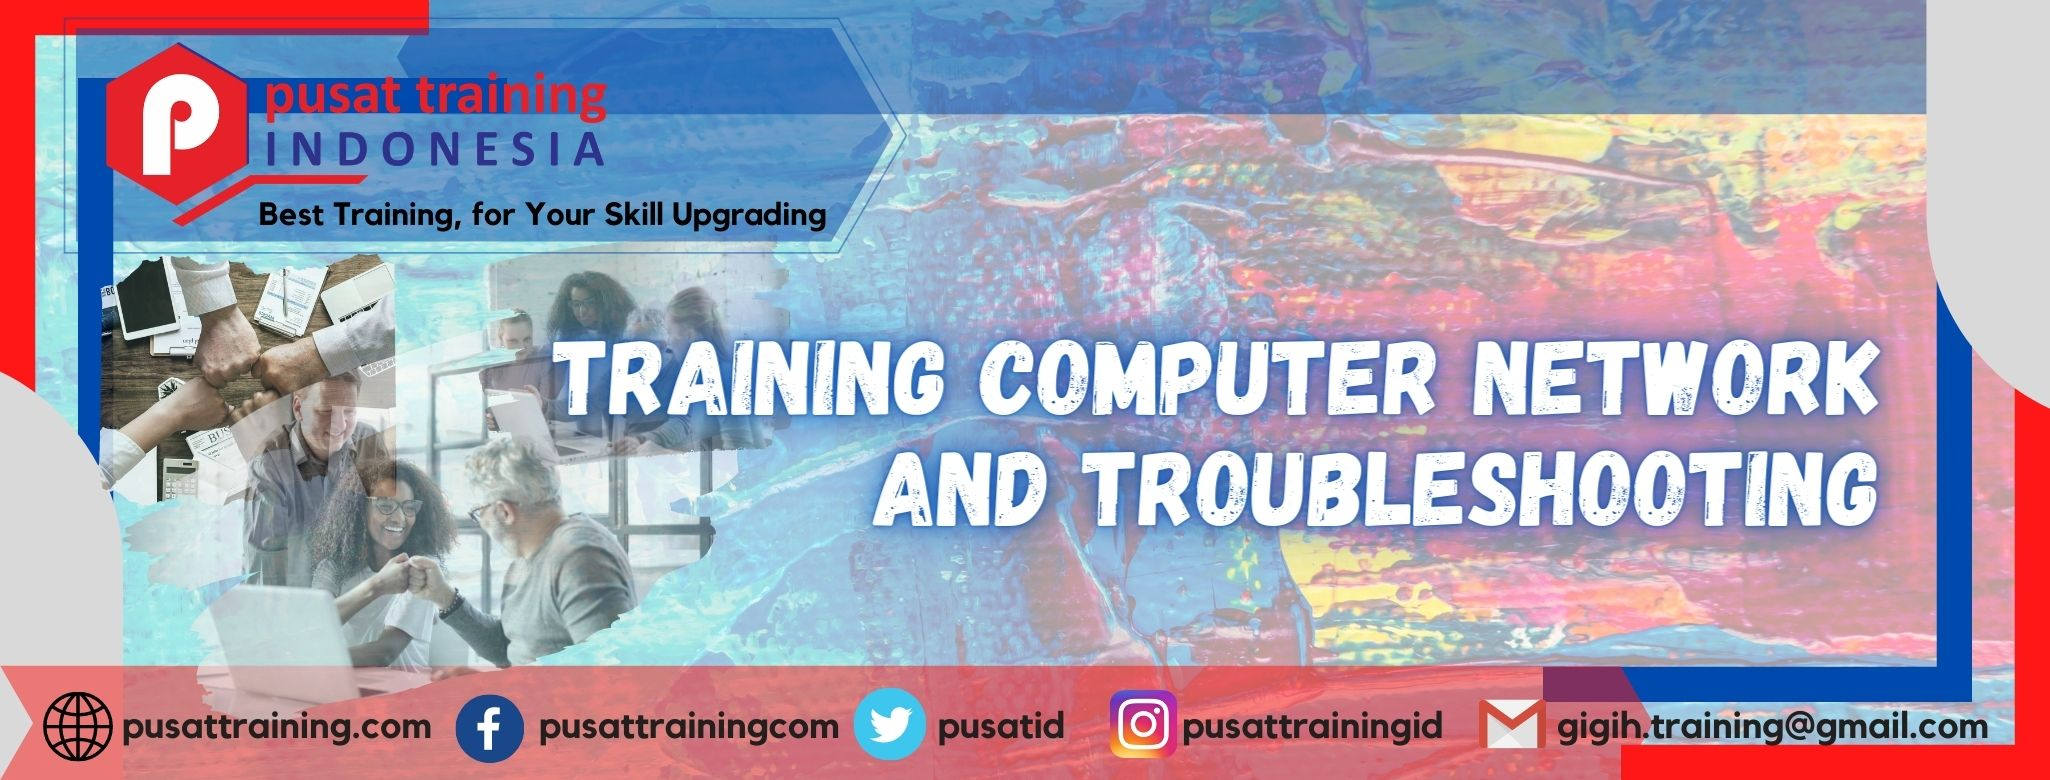 Training Computer Network and Troubleshooting